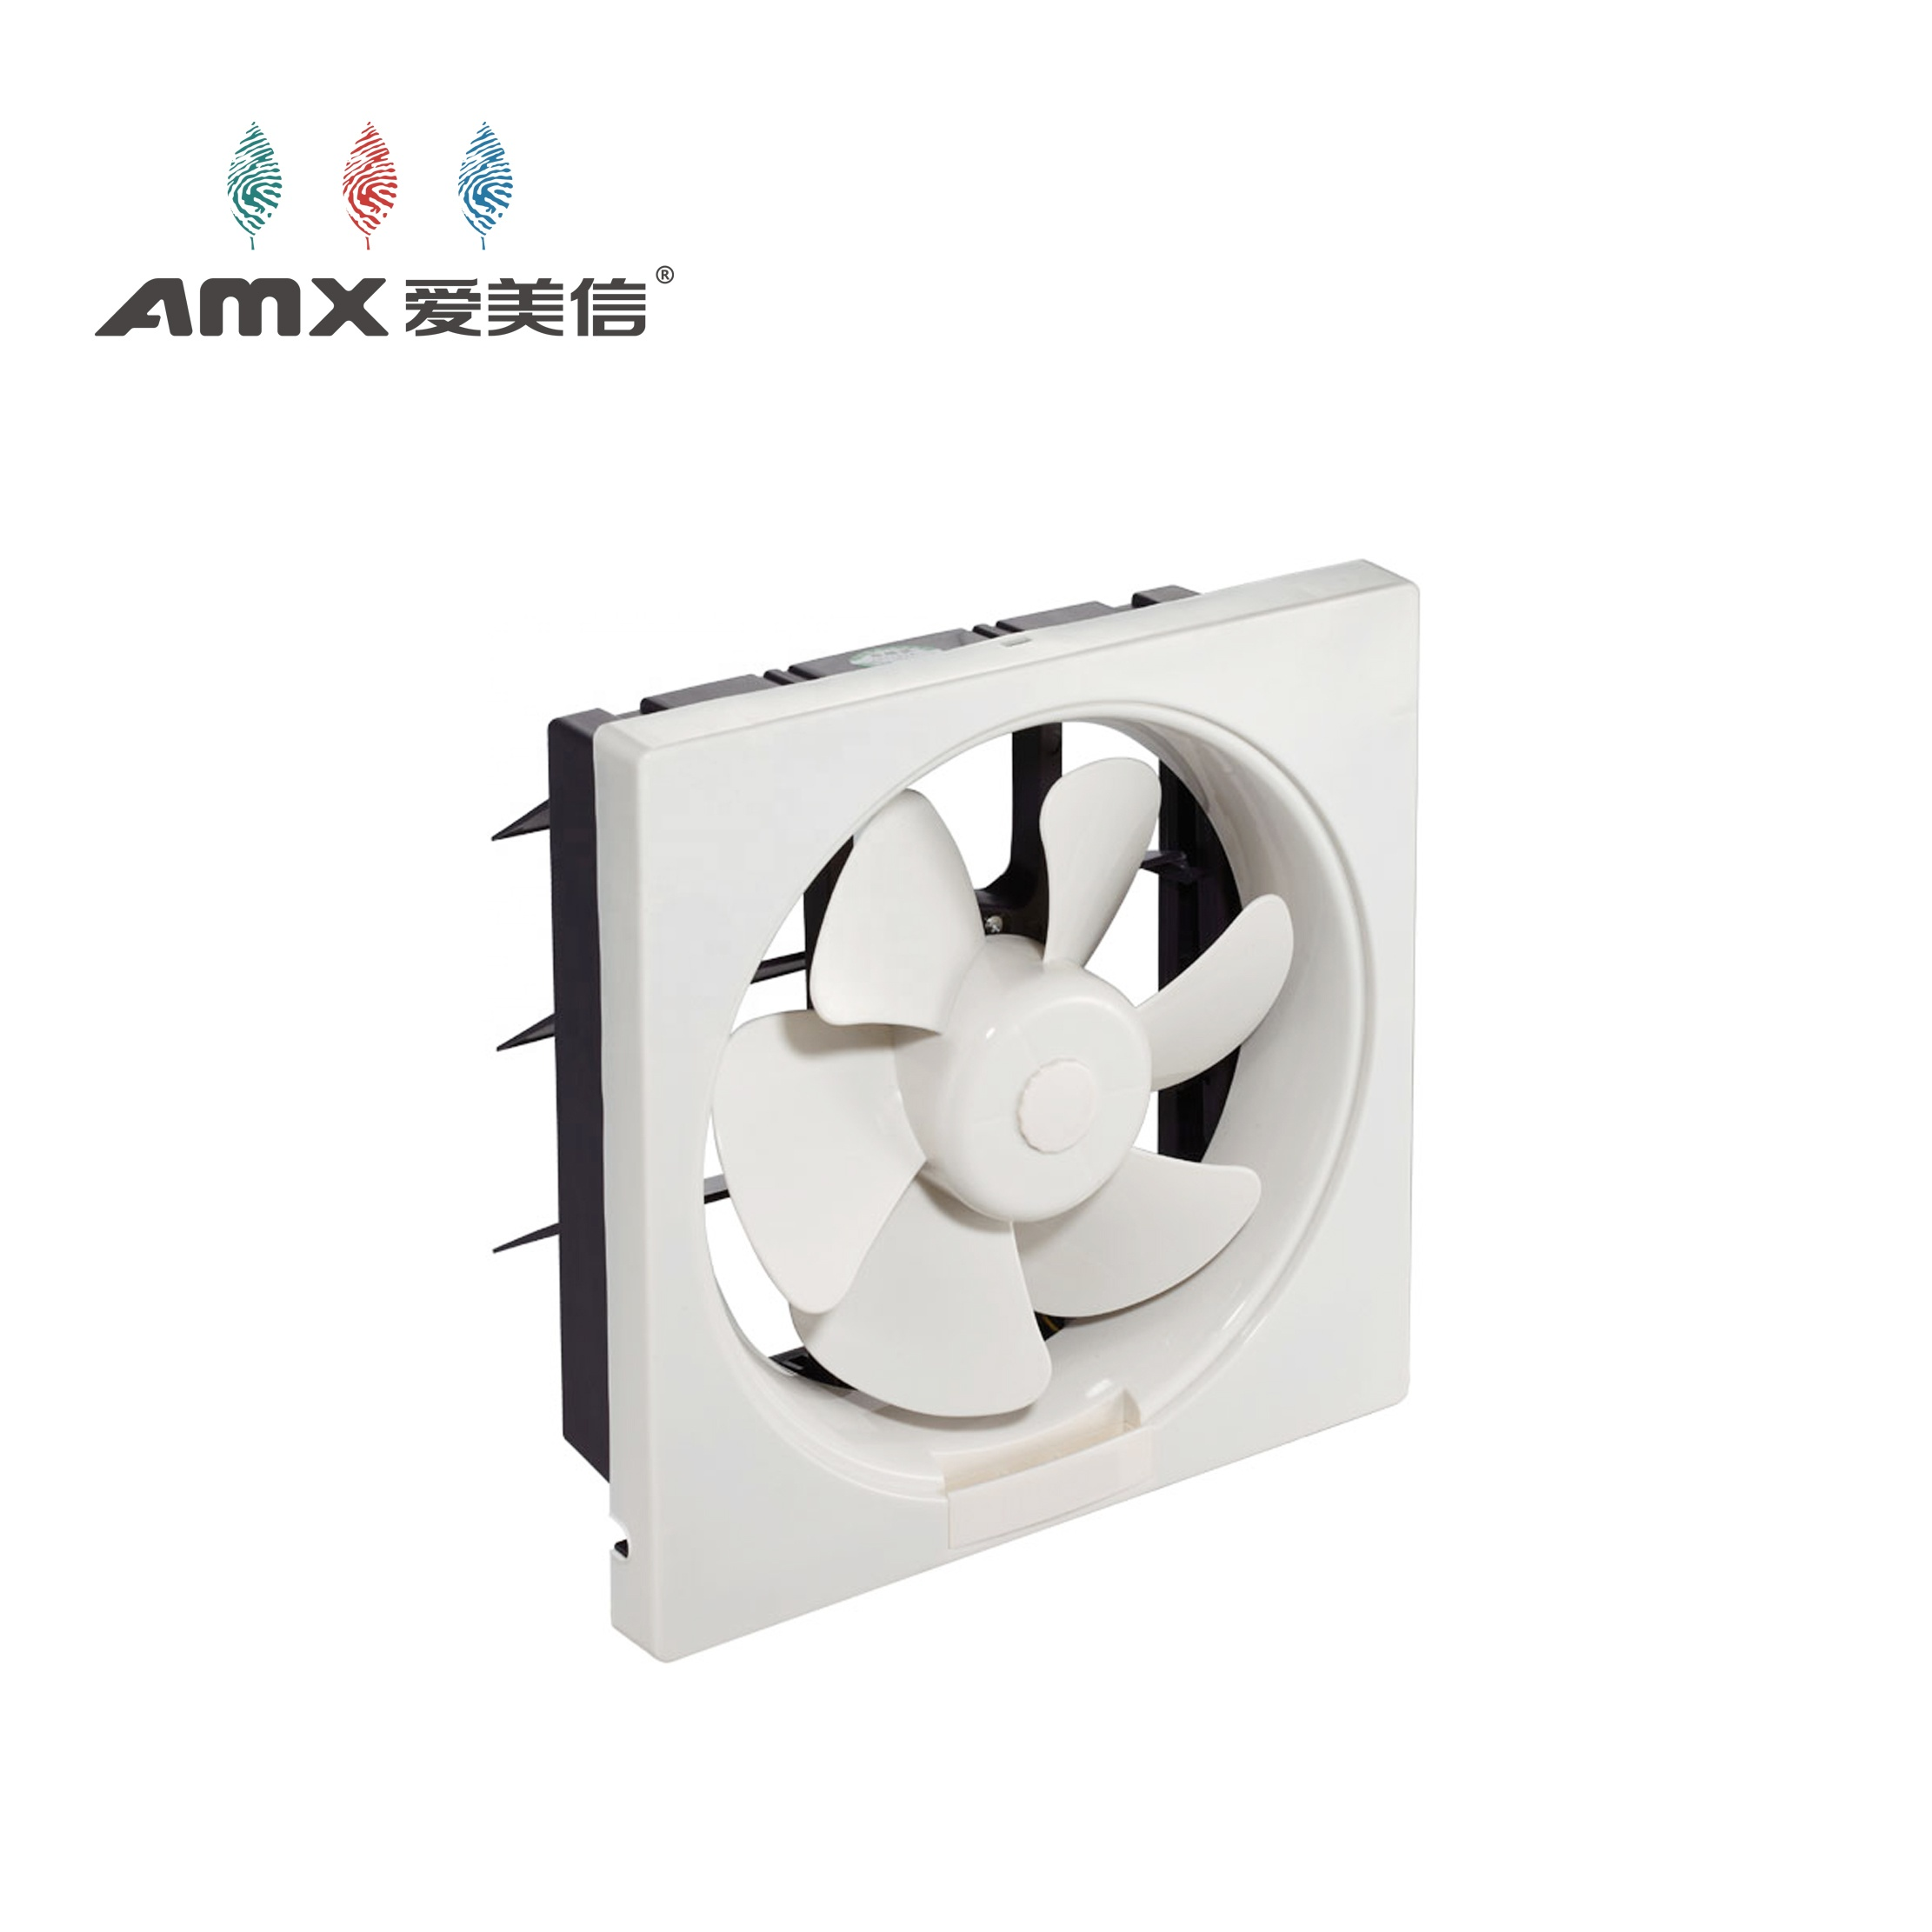 apb silent ventilator small exhaust fan in toilet axial air extractor view wall exhaust fan amx product details from popula fan co ltd on